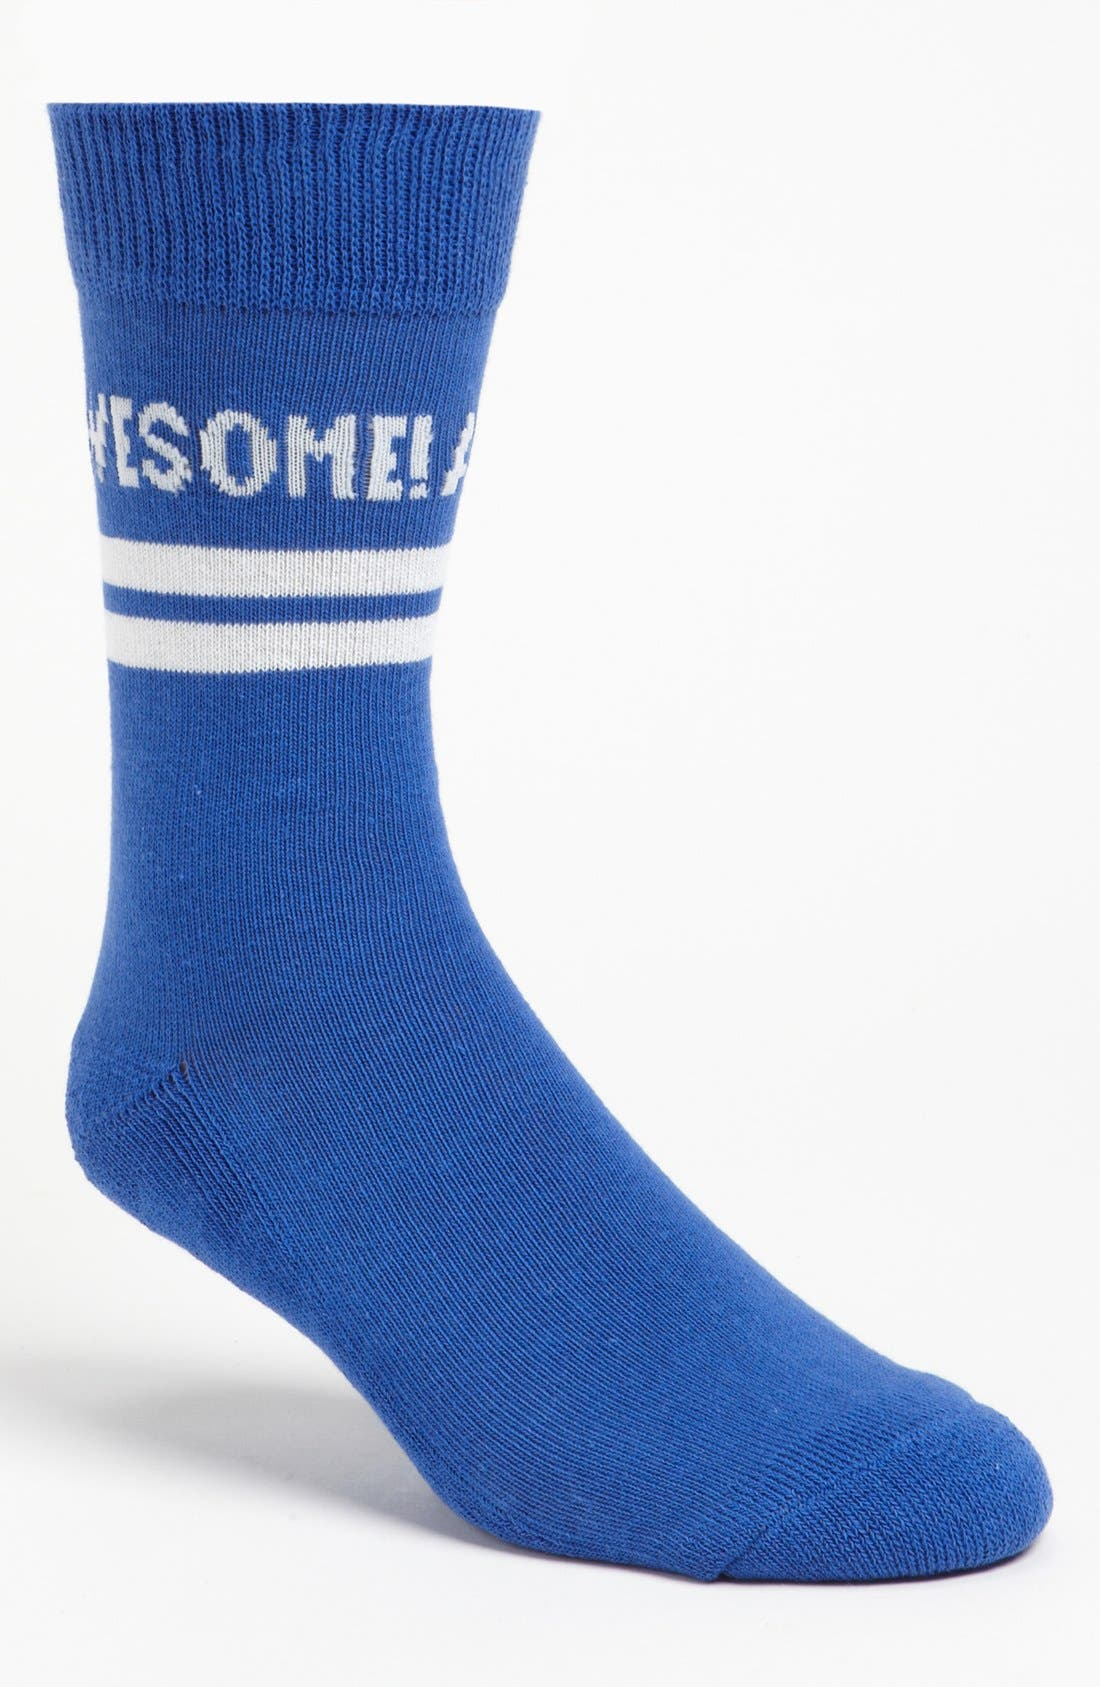 Alternate Image 1 Selected - Topman 'Awesome' Crew Socks